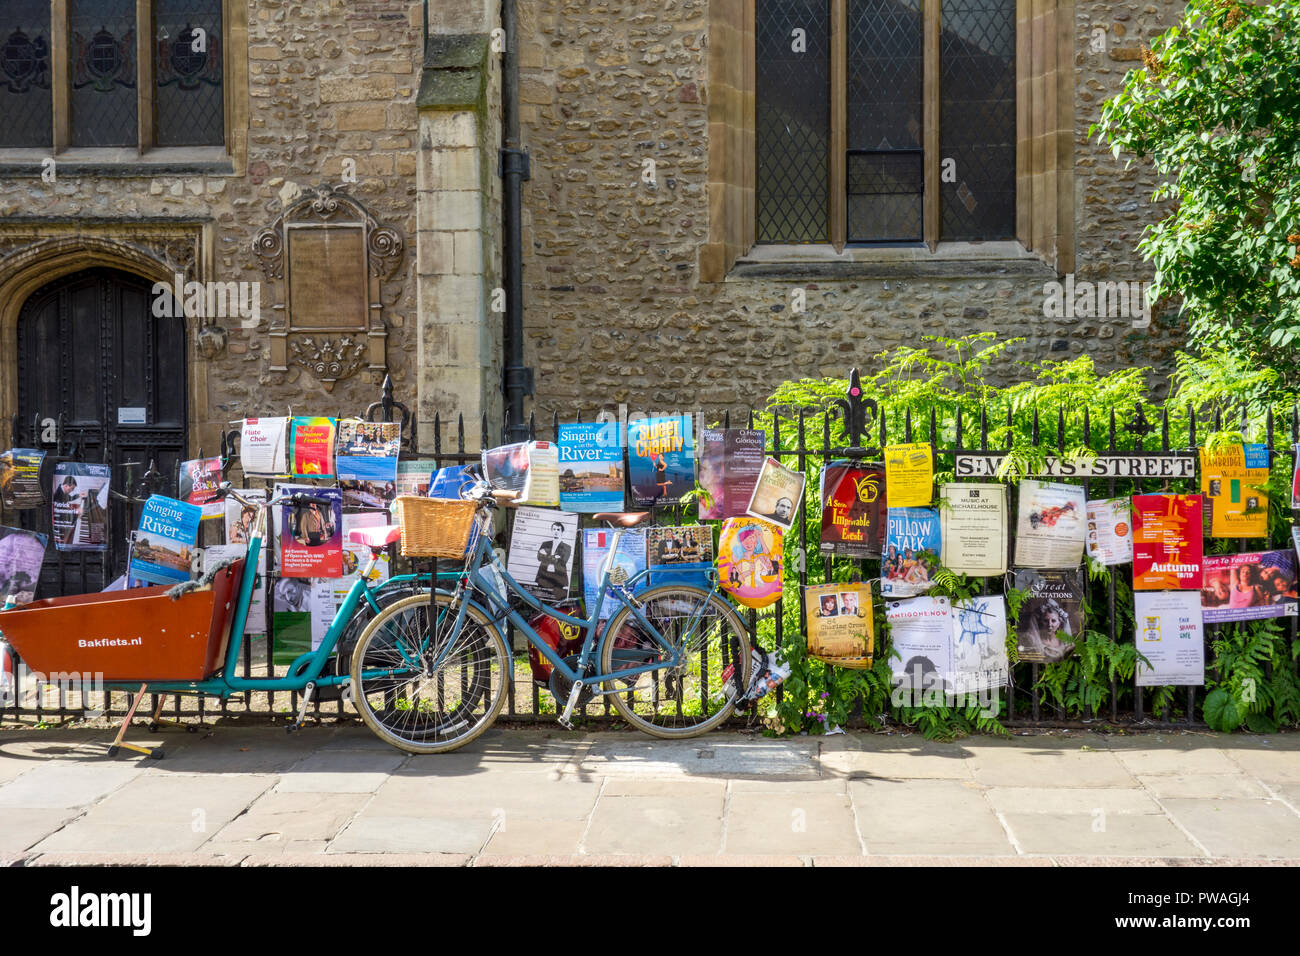 Bicycle chained to railings surrounded by posters or flyers outside Great St Mary's Church, Cambridge, UK - Stock Image